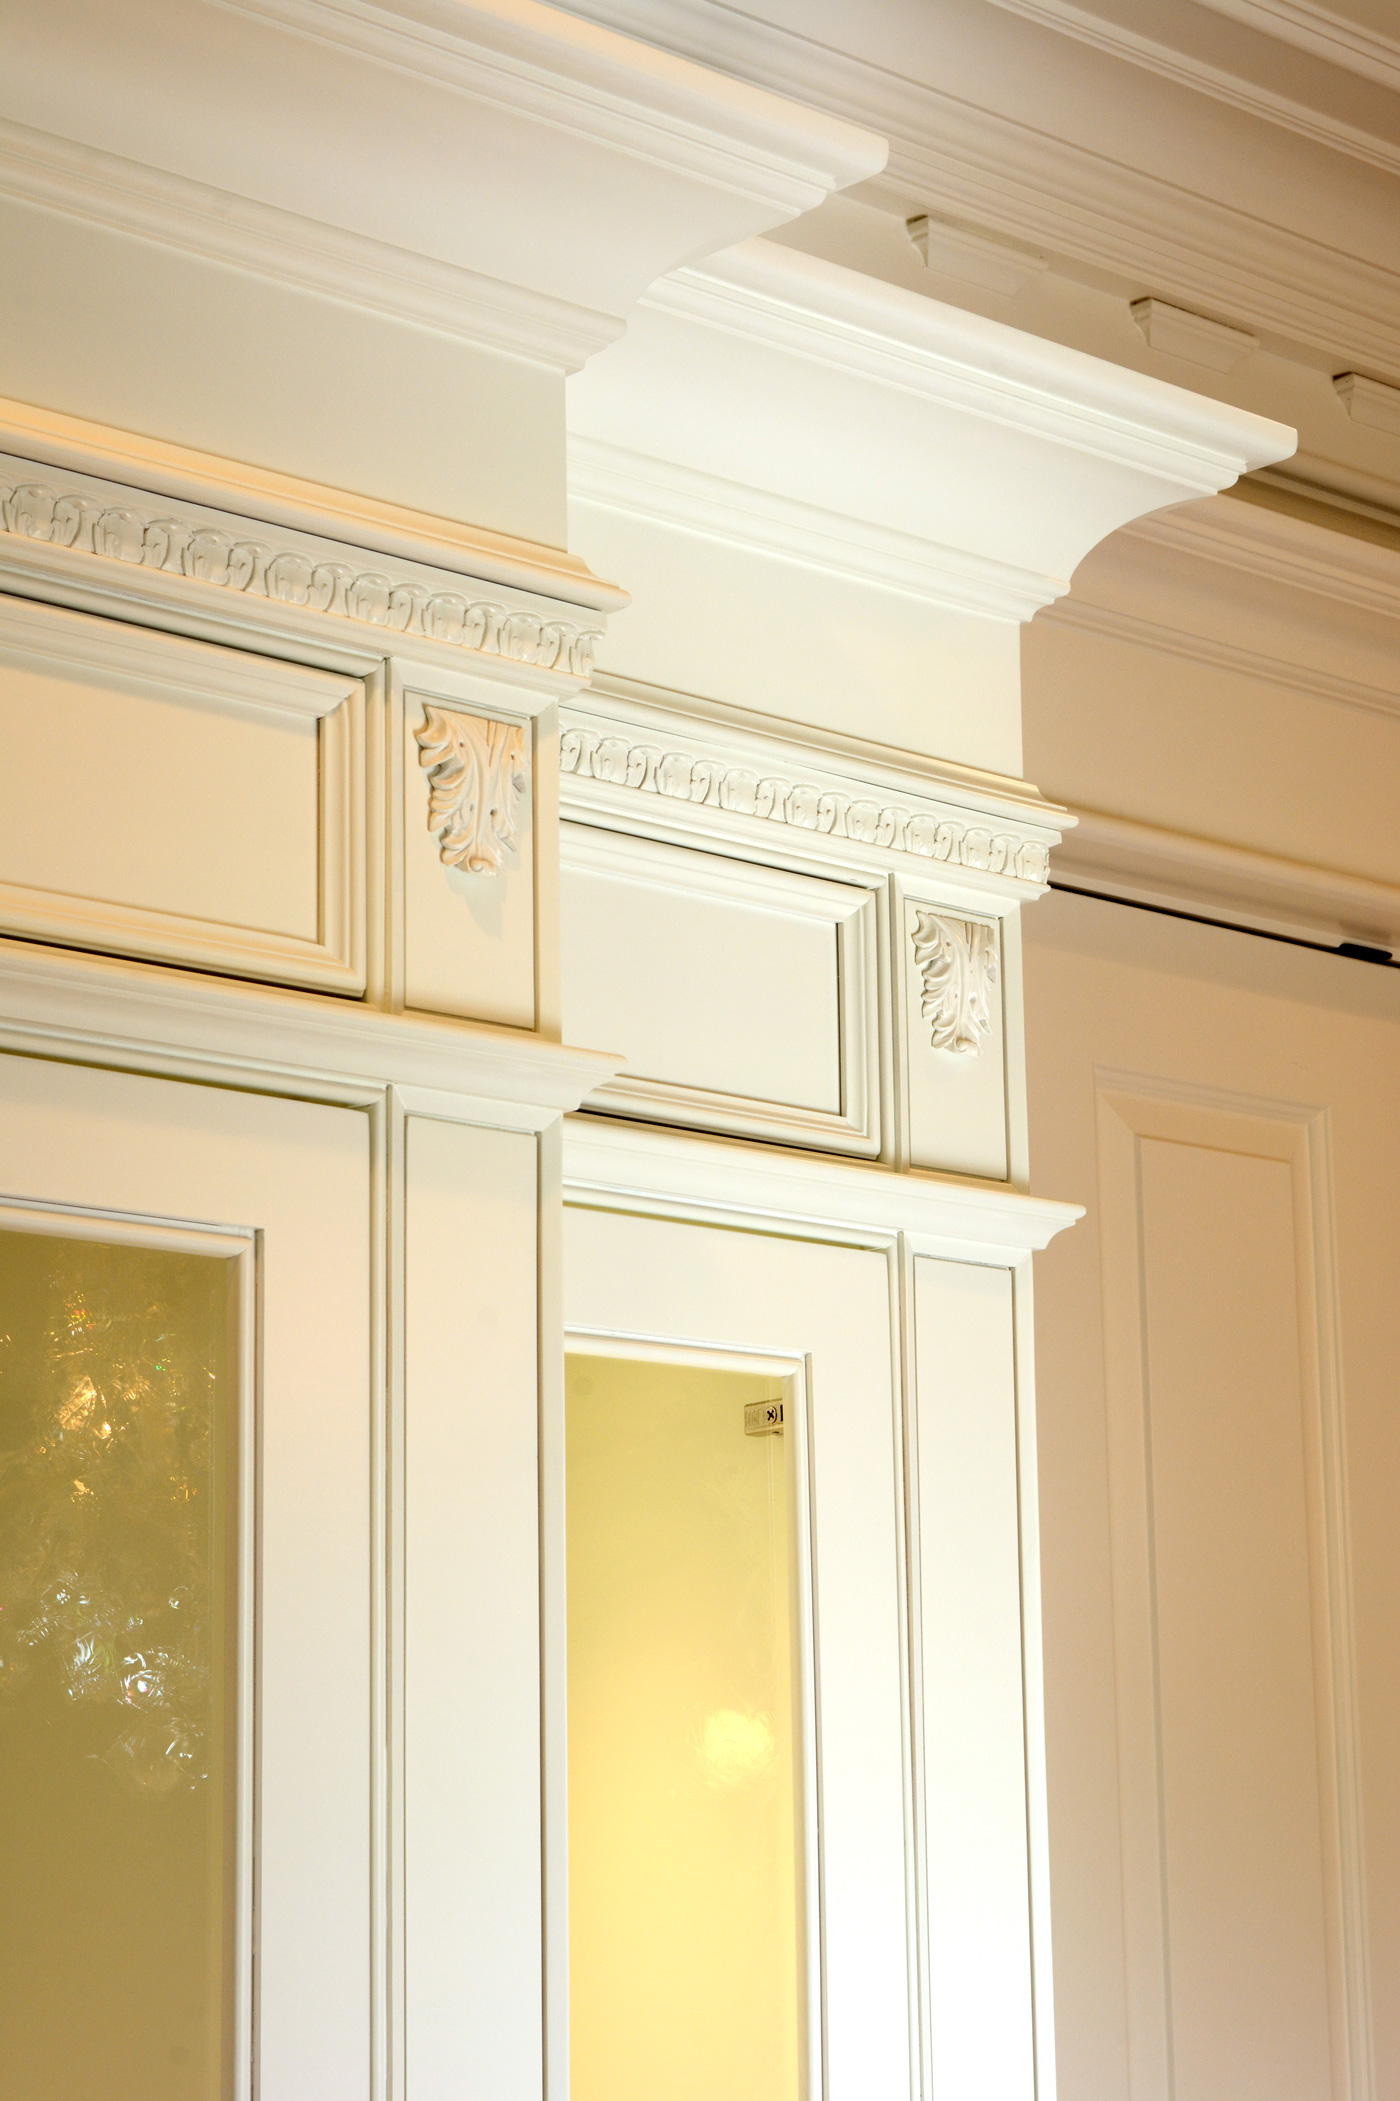 Custom Crown moulding China hutch, Laplante Construction